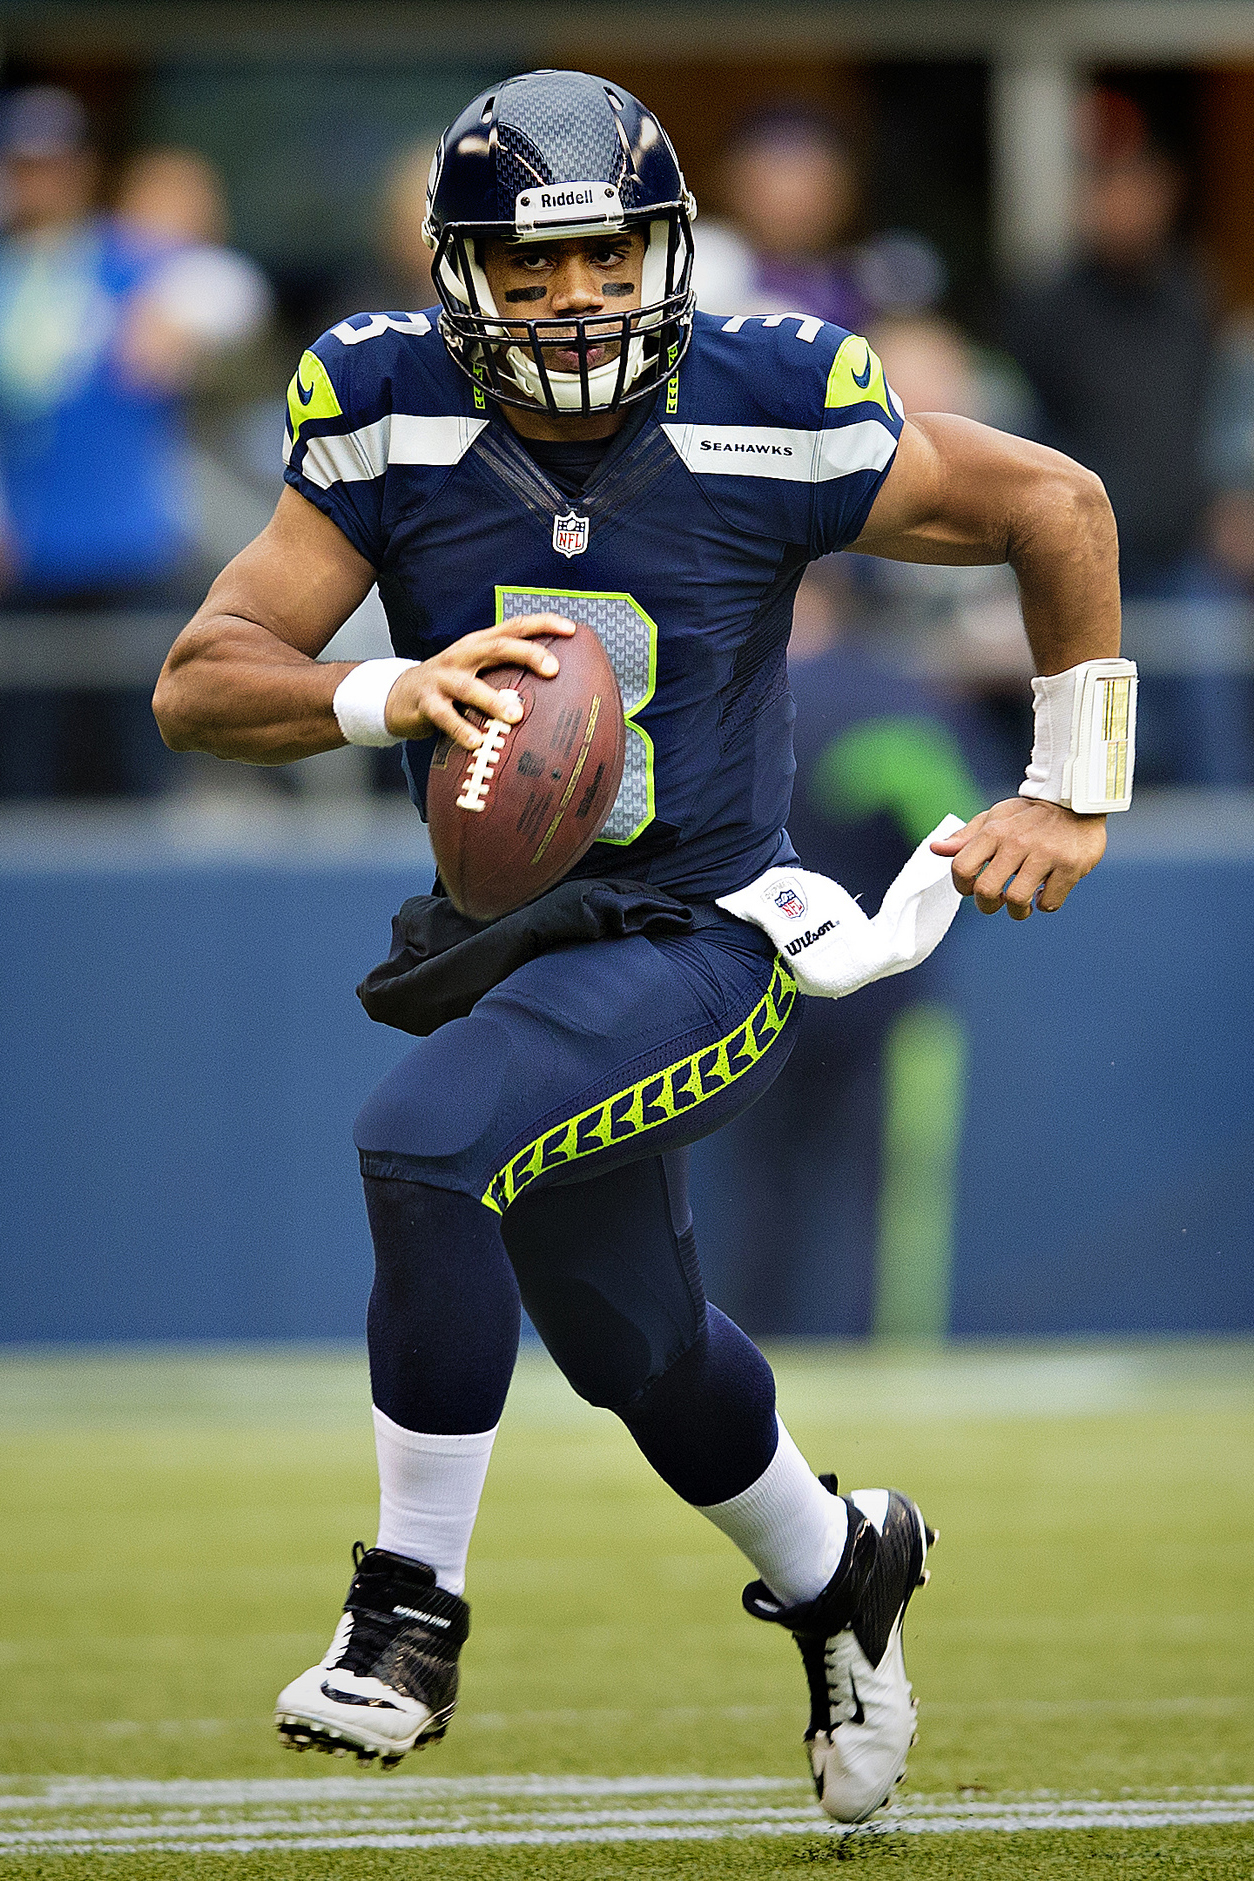 RUSSELL WILSON BECOMES N.F.L.'S HIGHEST PAID PLAYER : CIARA IS WINNING